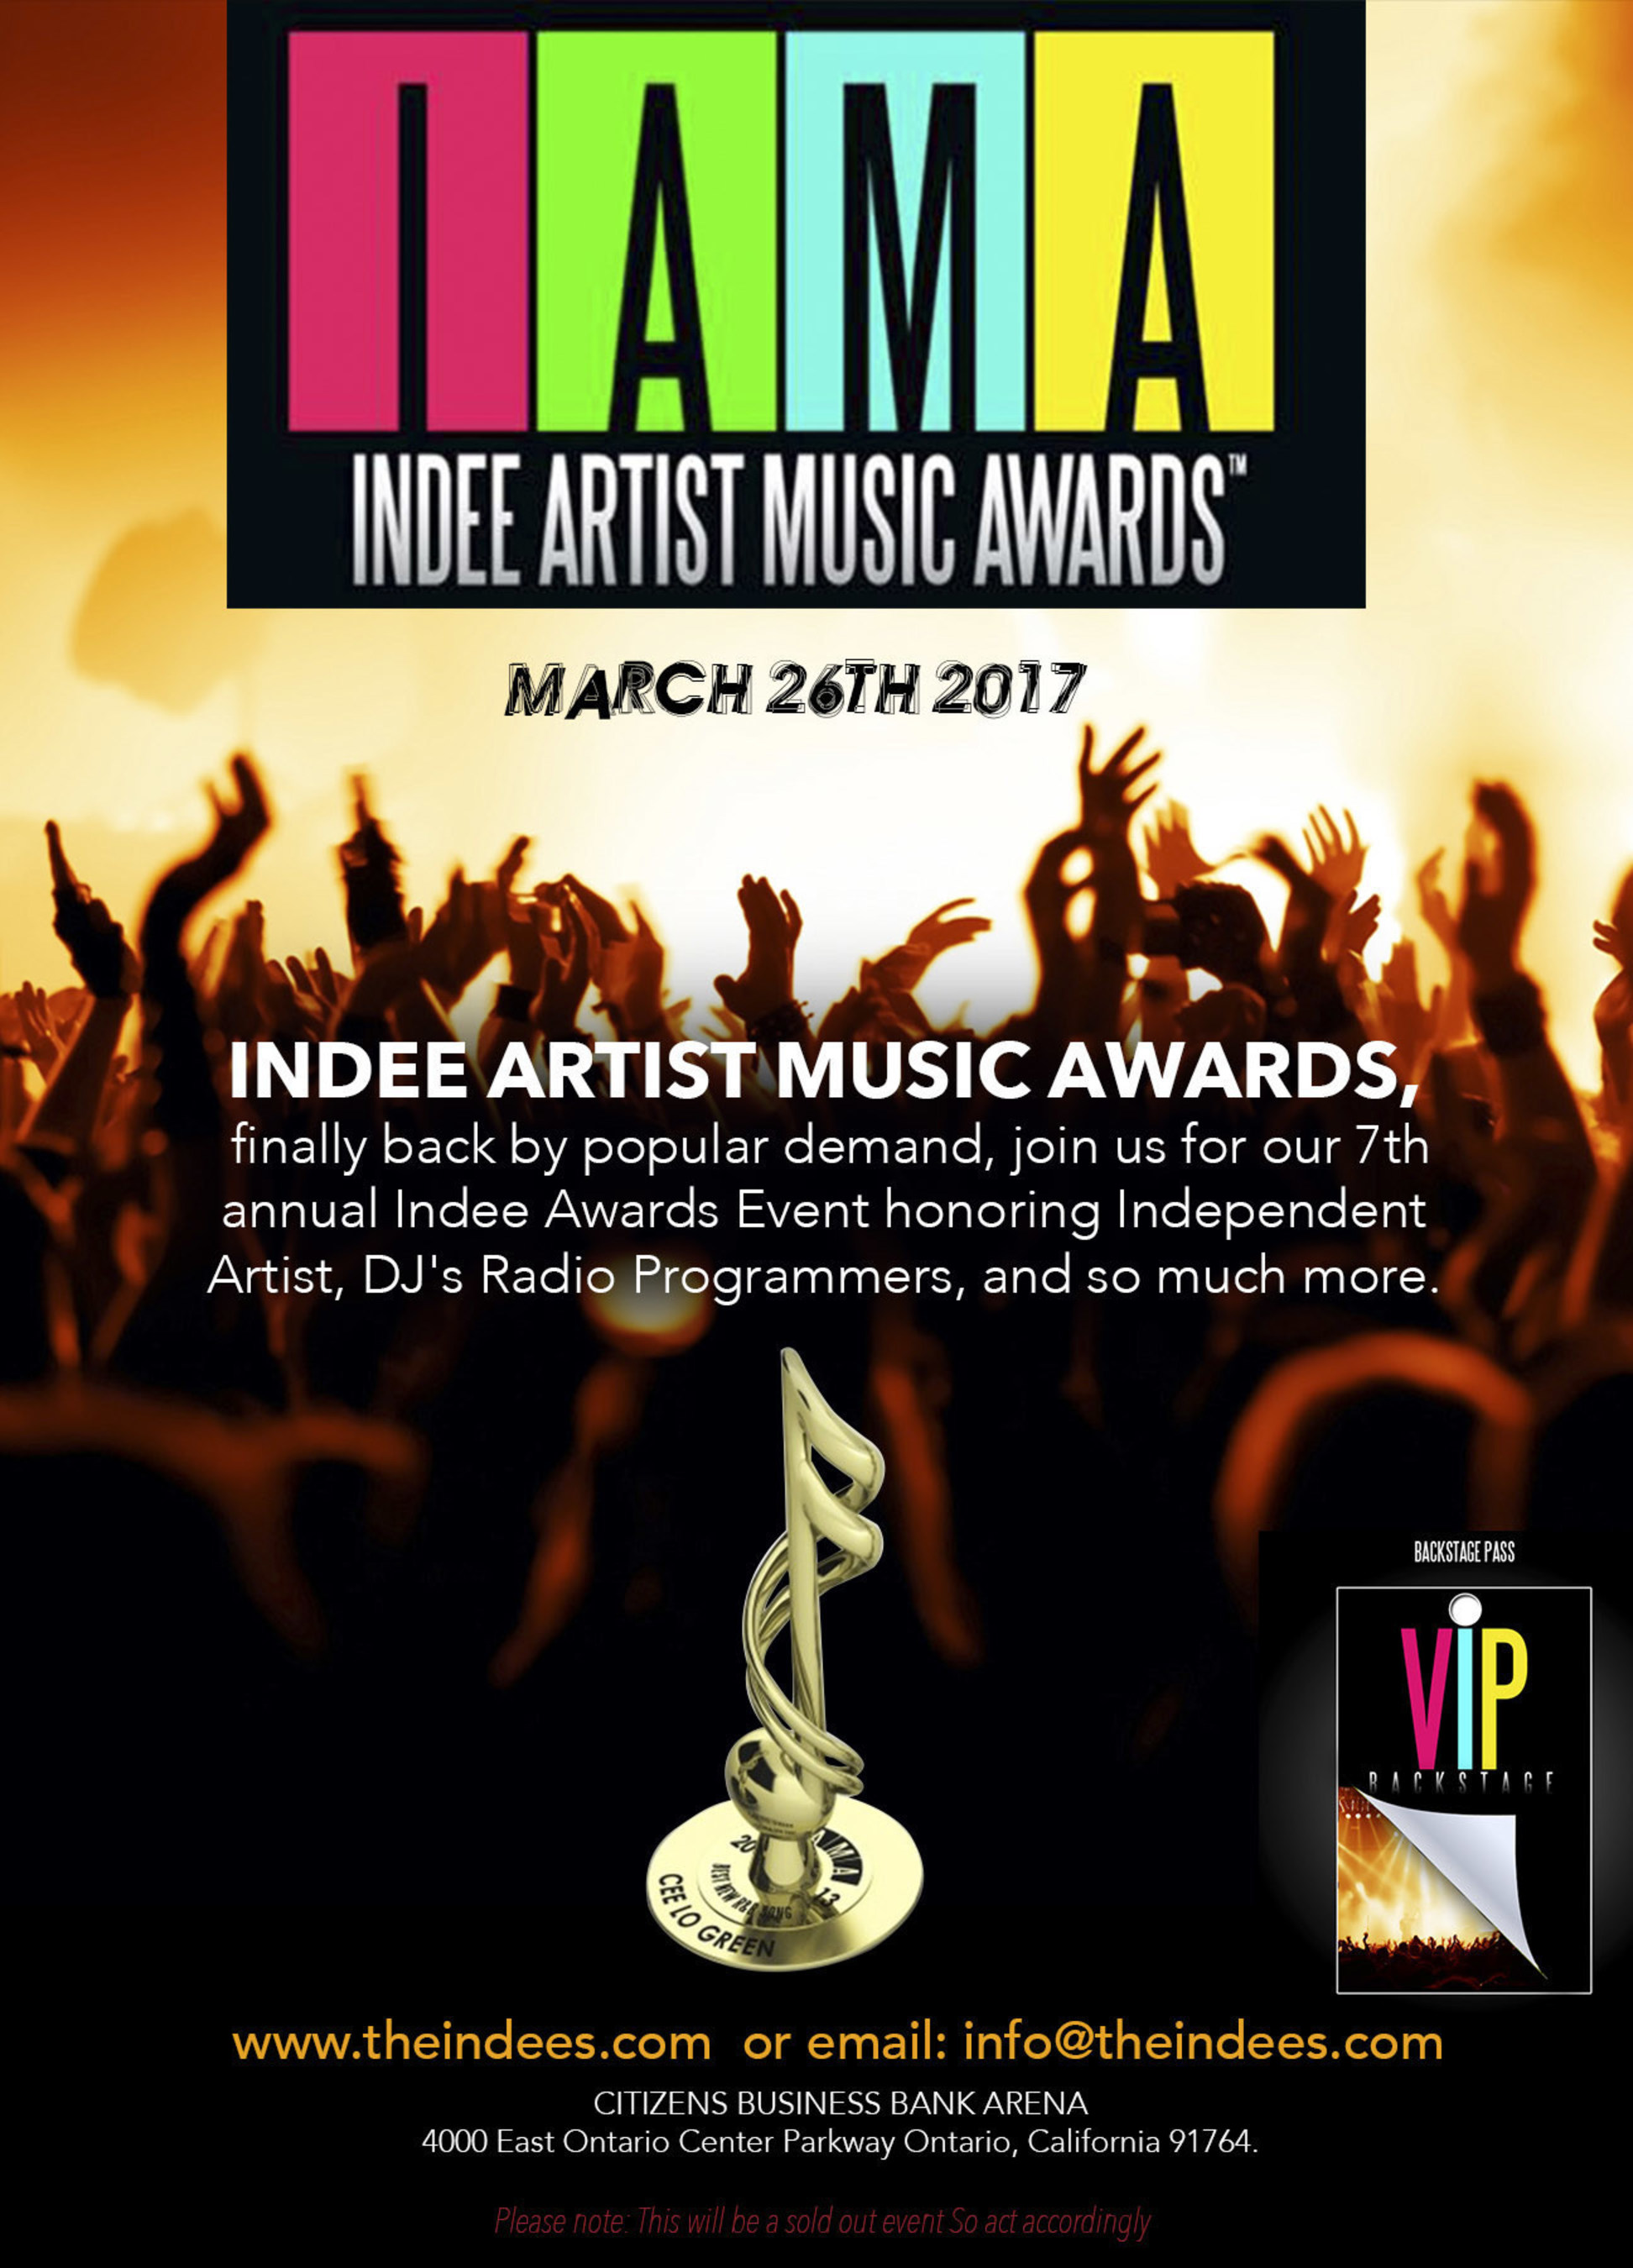 Indee Artist Music Awards, The Independent leaders that recognize Independent Artist, Musicians, and its delegates. Eliminating Award Politics, we recognize the creative artist not popularity!